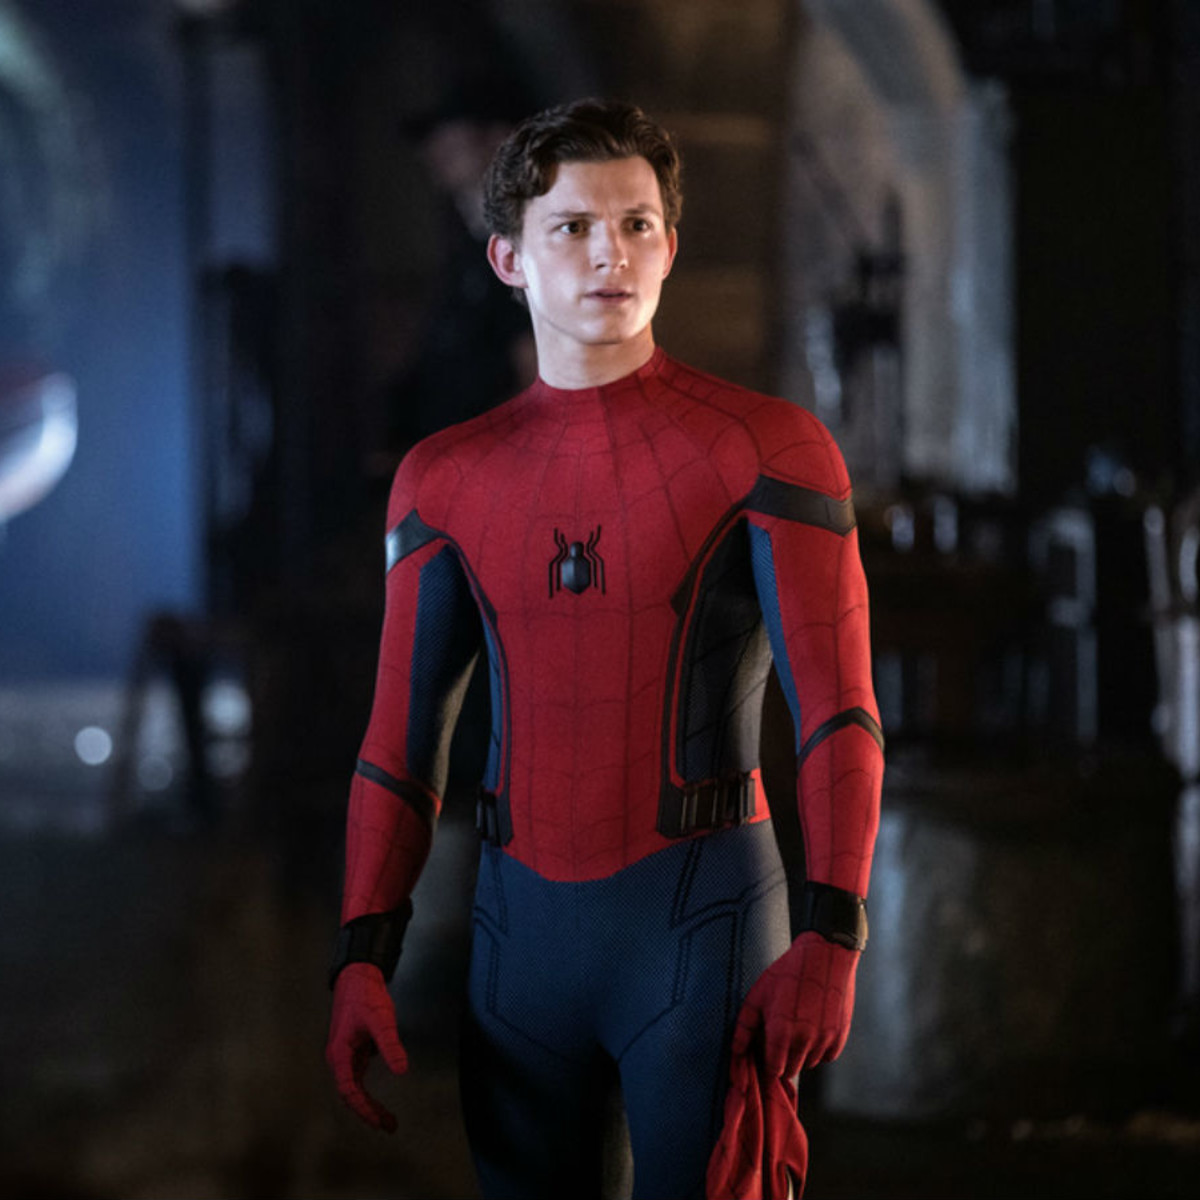 Tom Holland in Spider-Man: Far from Home